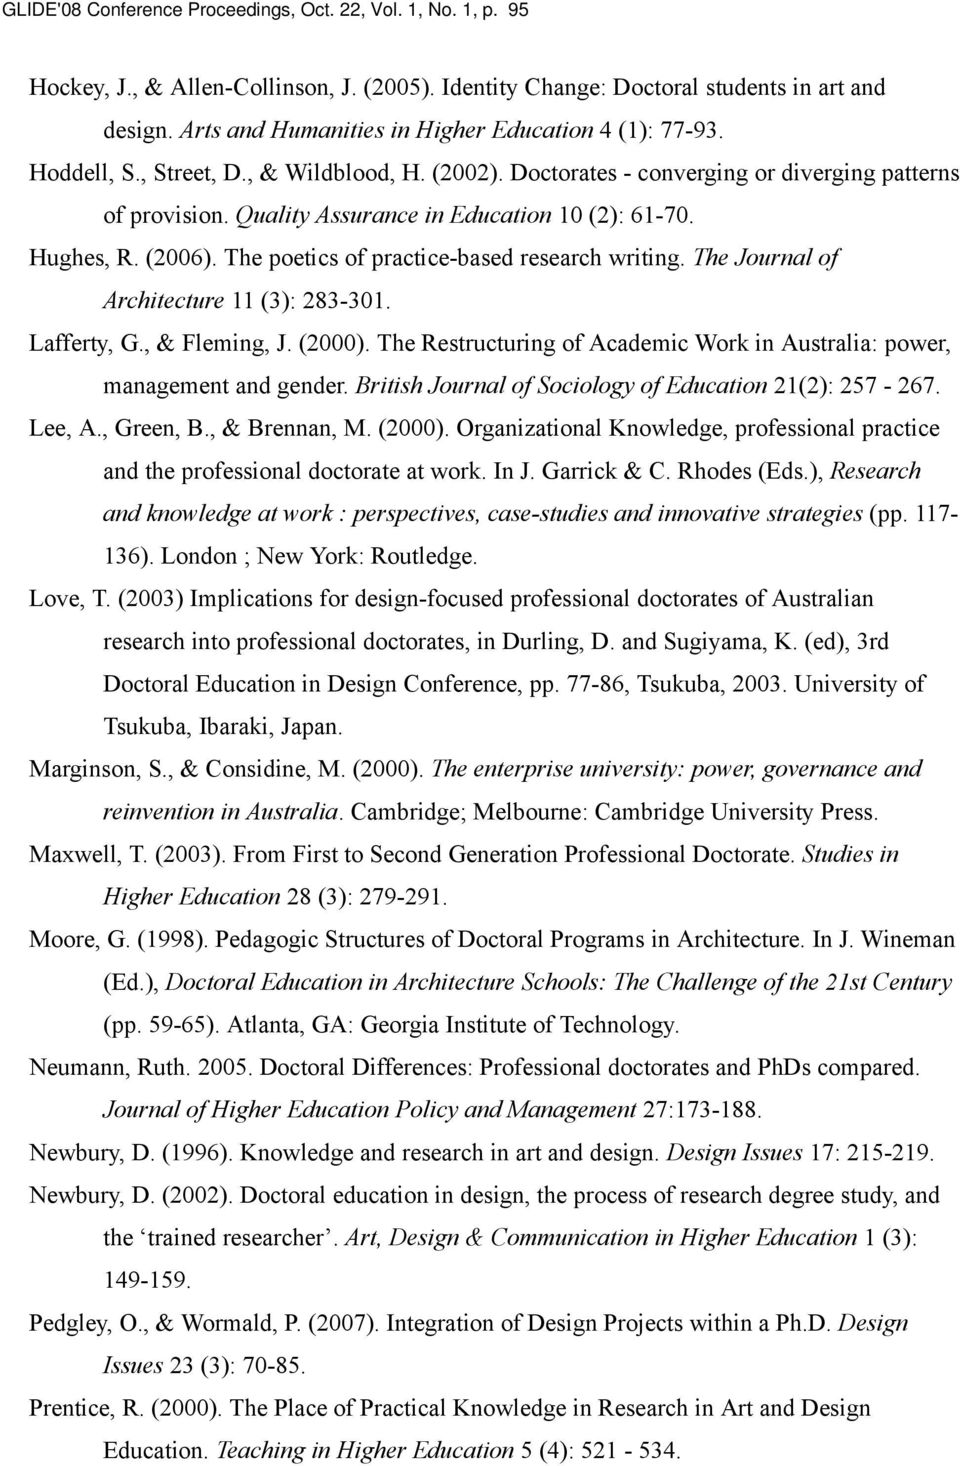 Quality Assurance in Education 10 (2): 61-70. Hughes, R. (2006). The poetics of practice-based research writing. The Journal of Architecture 11 (3): 283-301. Lafferty, G., & Fleming, J. (2000).